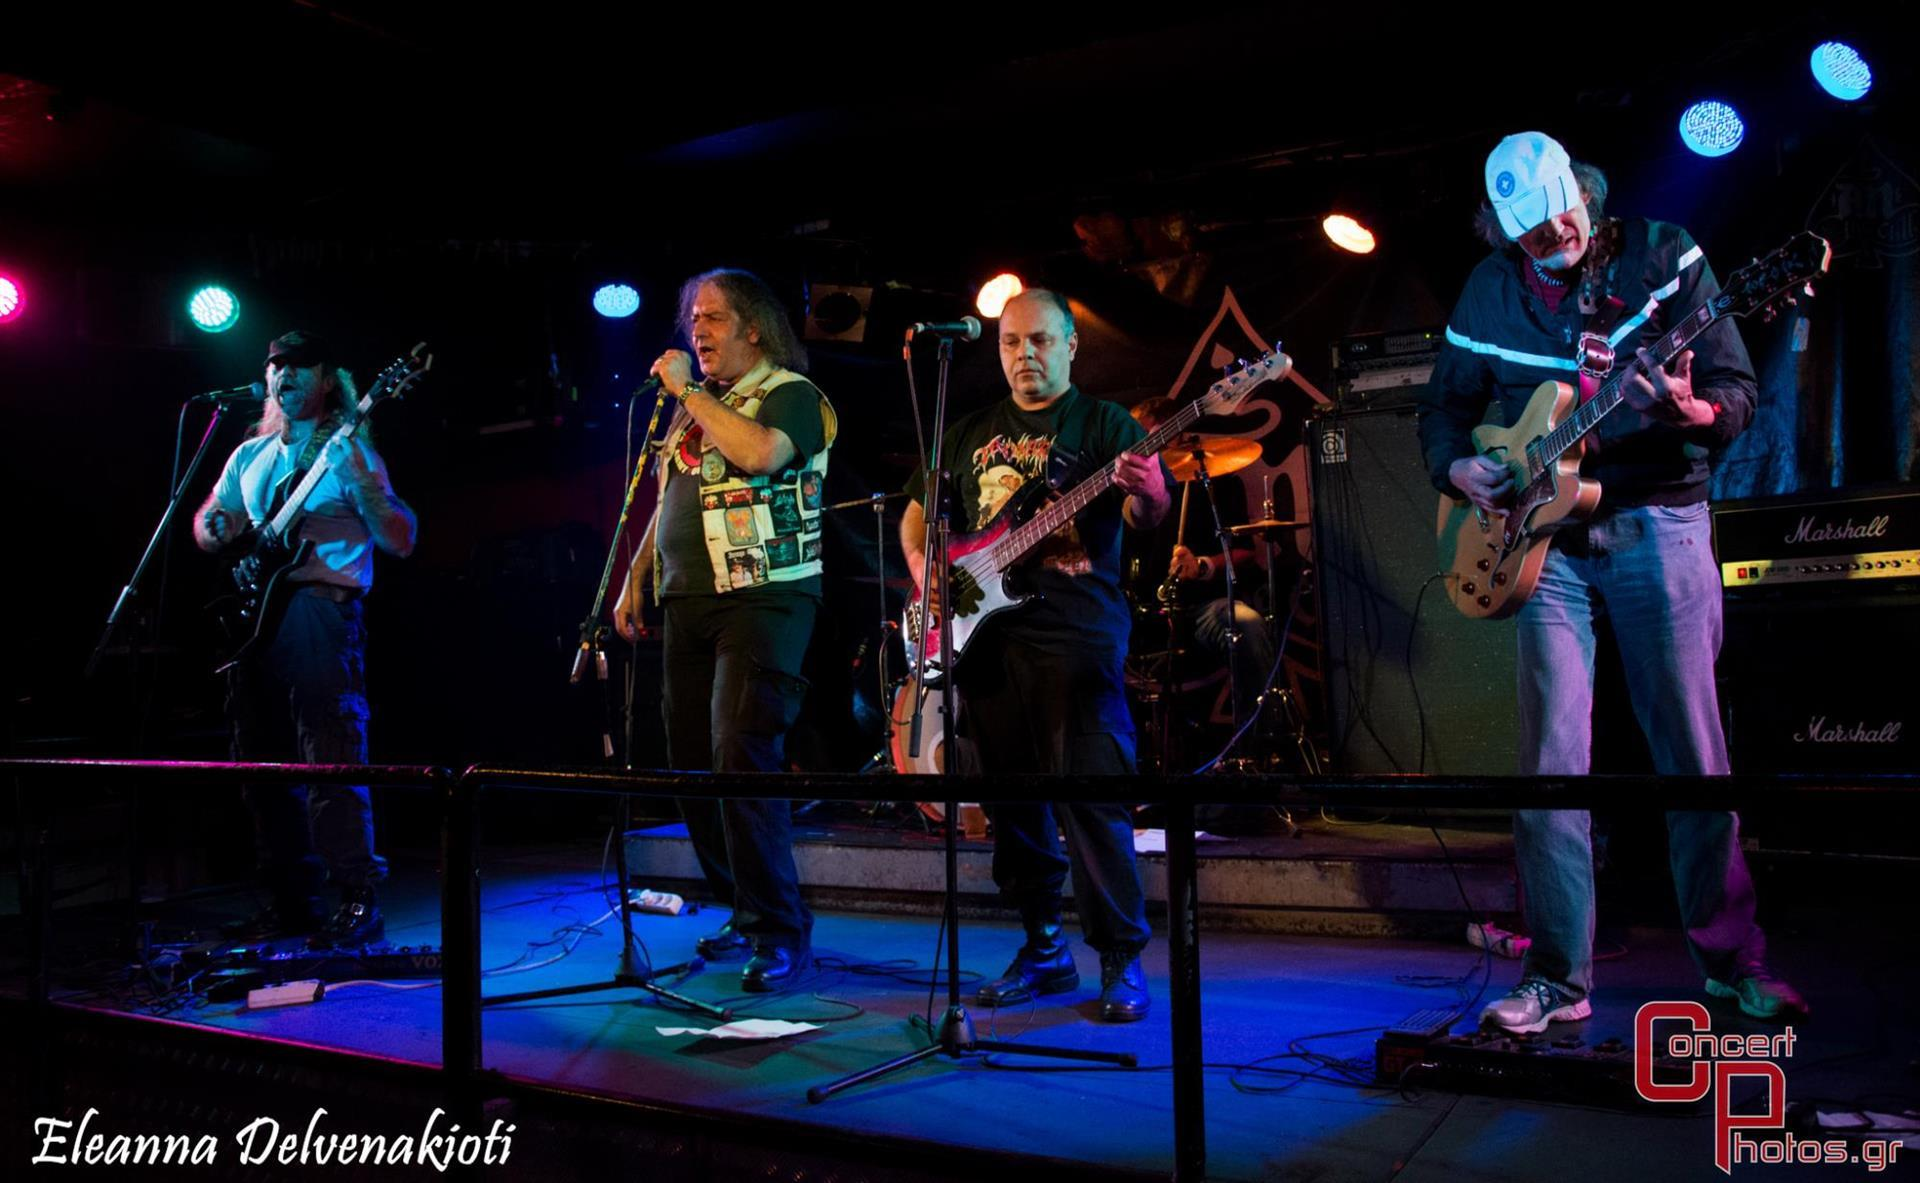 Battle Of The Bands Athens - Leg 4-test photographer:  - Battle Of The Bands-20150208-205017